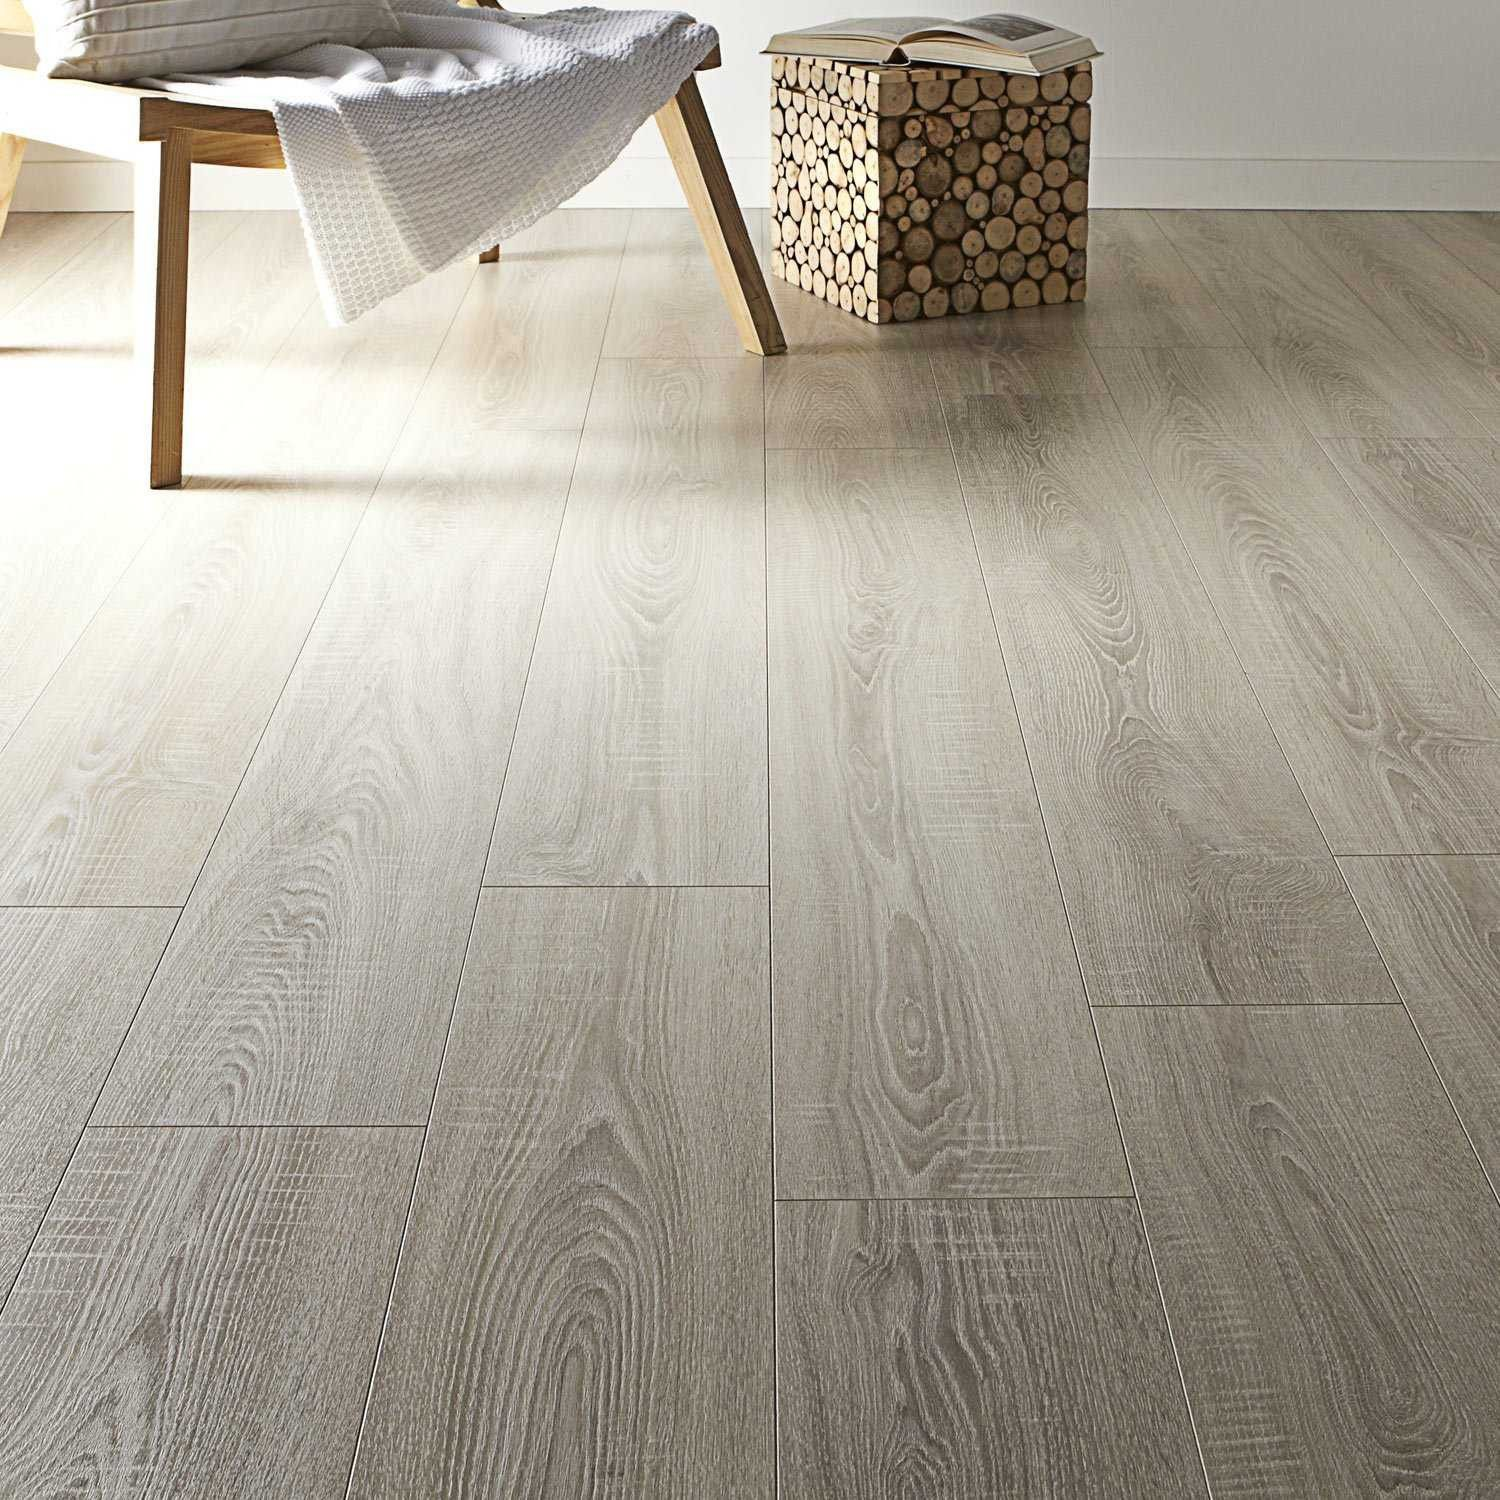 Awesome Parquet Flottant Le Roy Merlin Sol Stratifie Revetement De Sol En Vinyle Revetement Sol